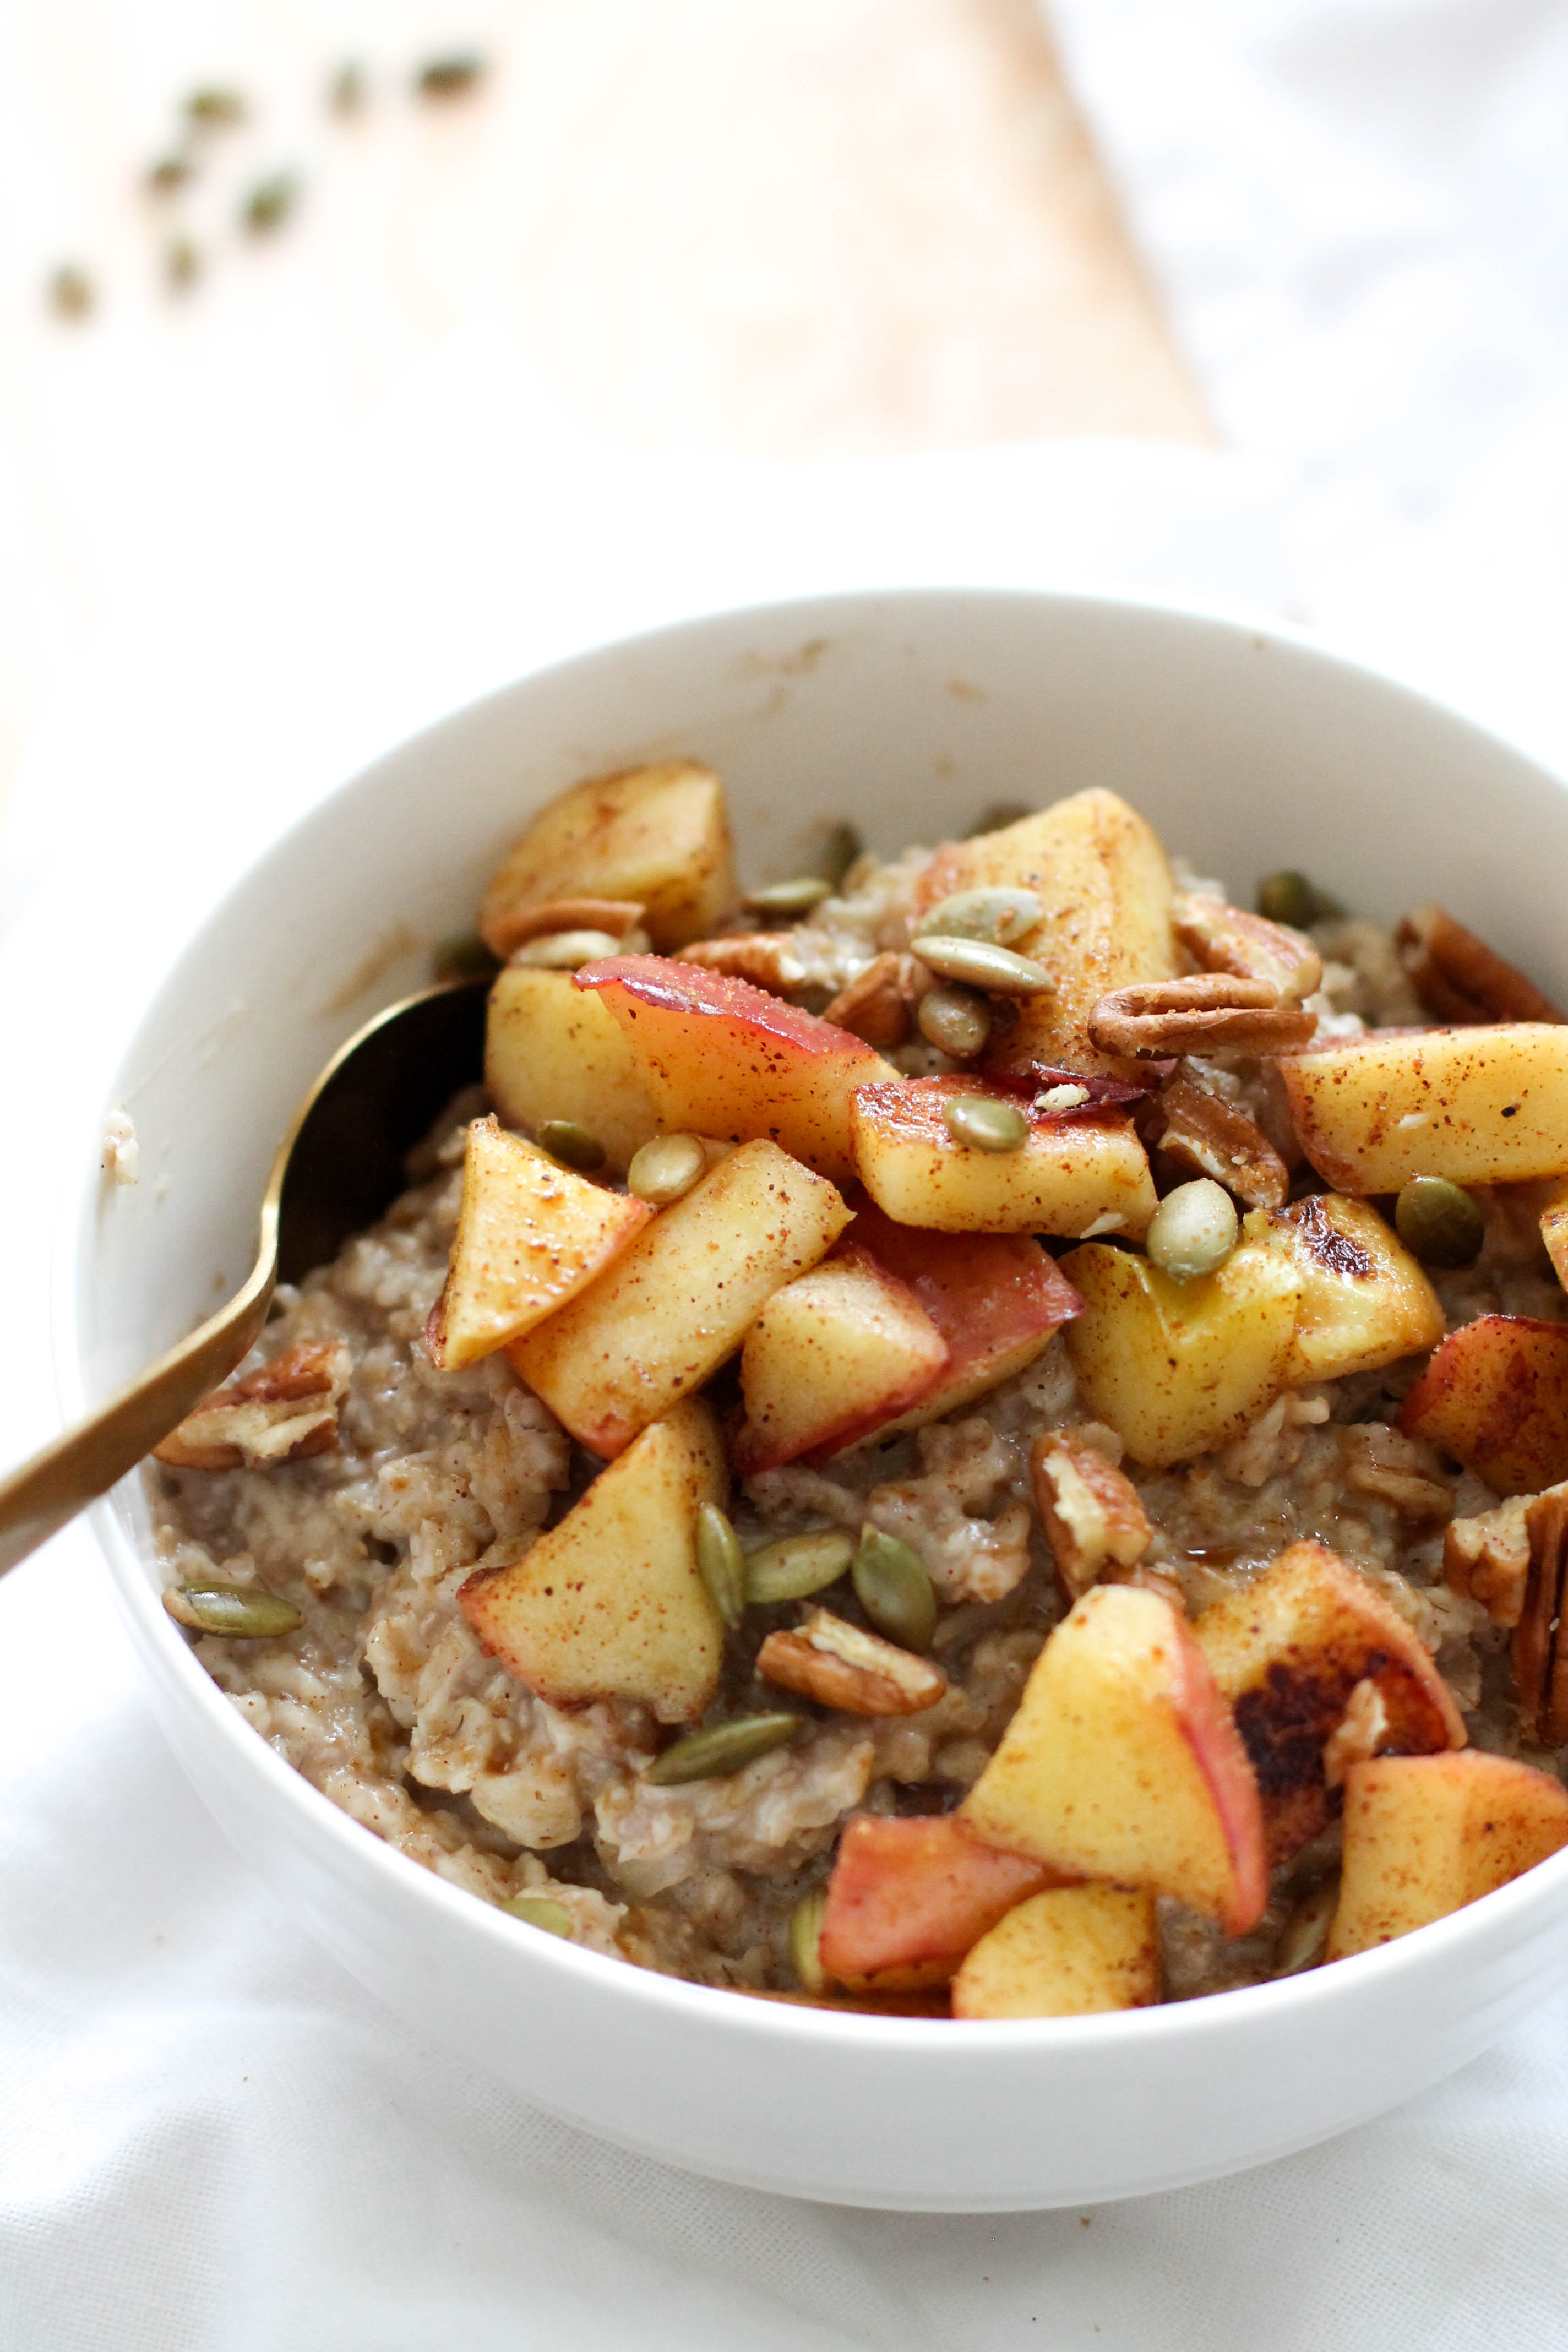 This spiced apple breakfast bowl is a delicious, cozy breakfast for any day of the week. It's filled with spices, sweetness, and flavor. Plus, it's vegan and gluten free!